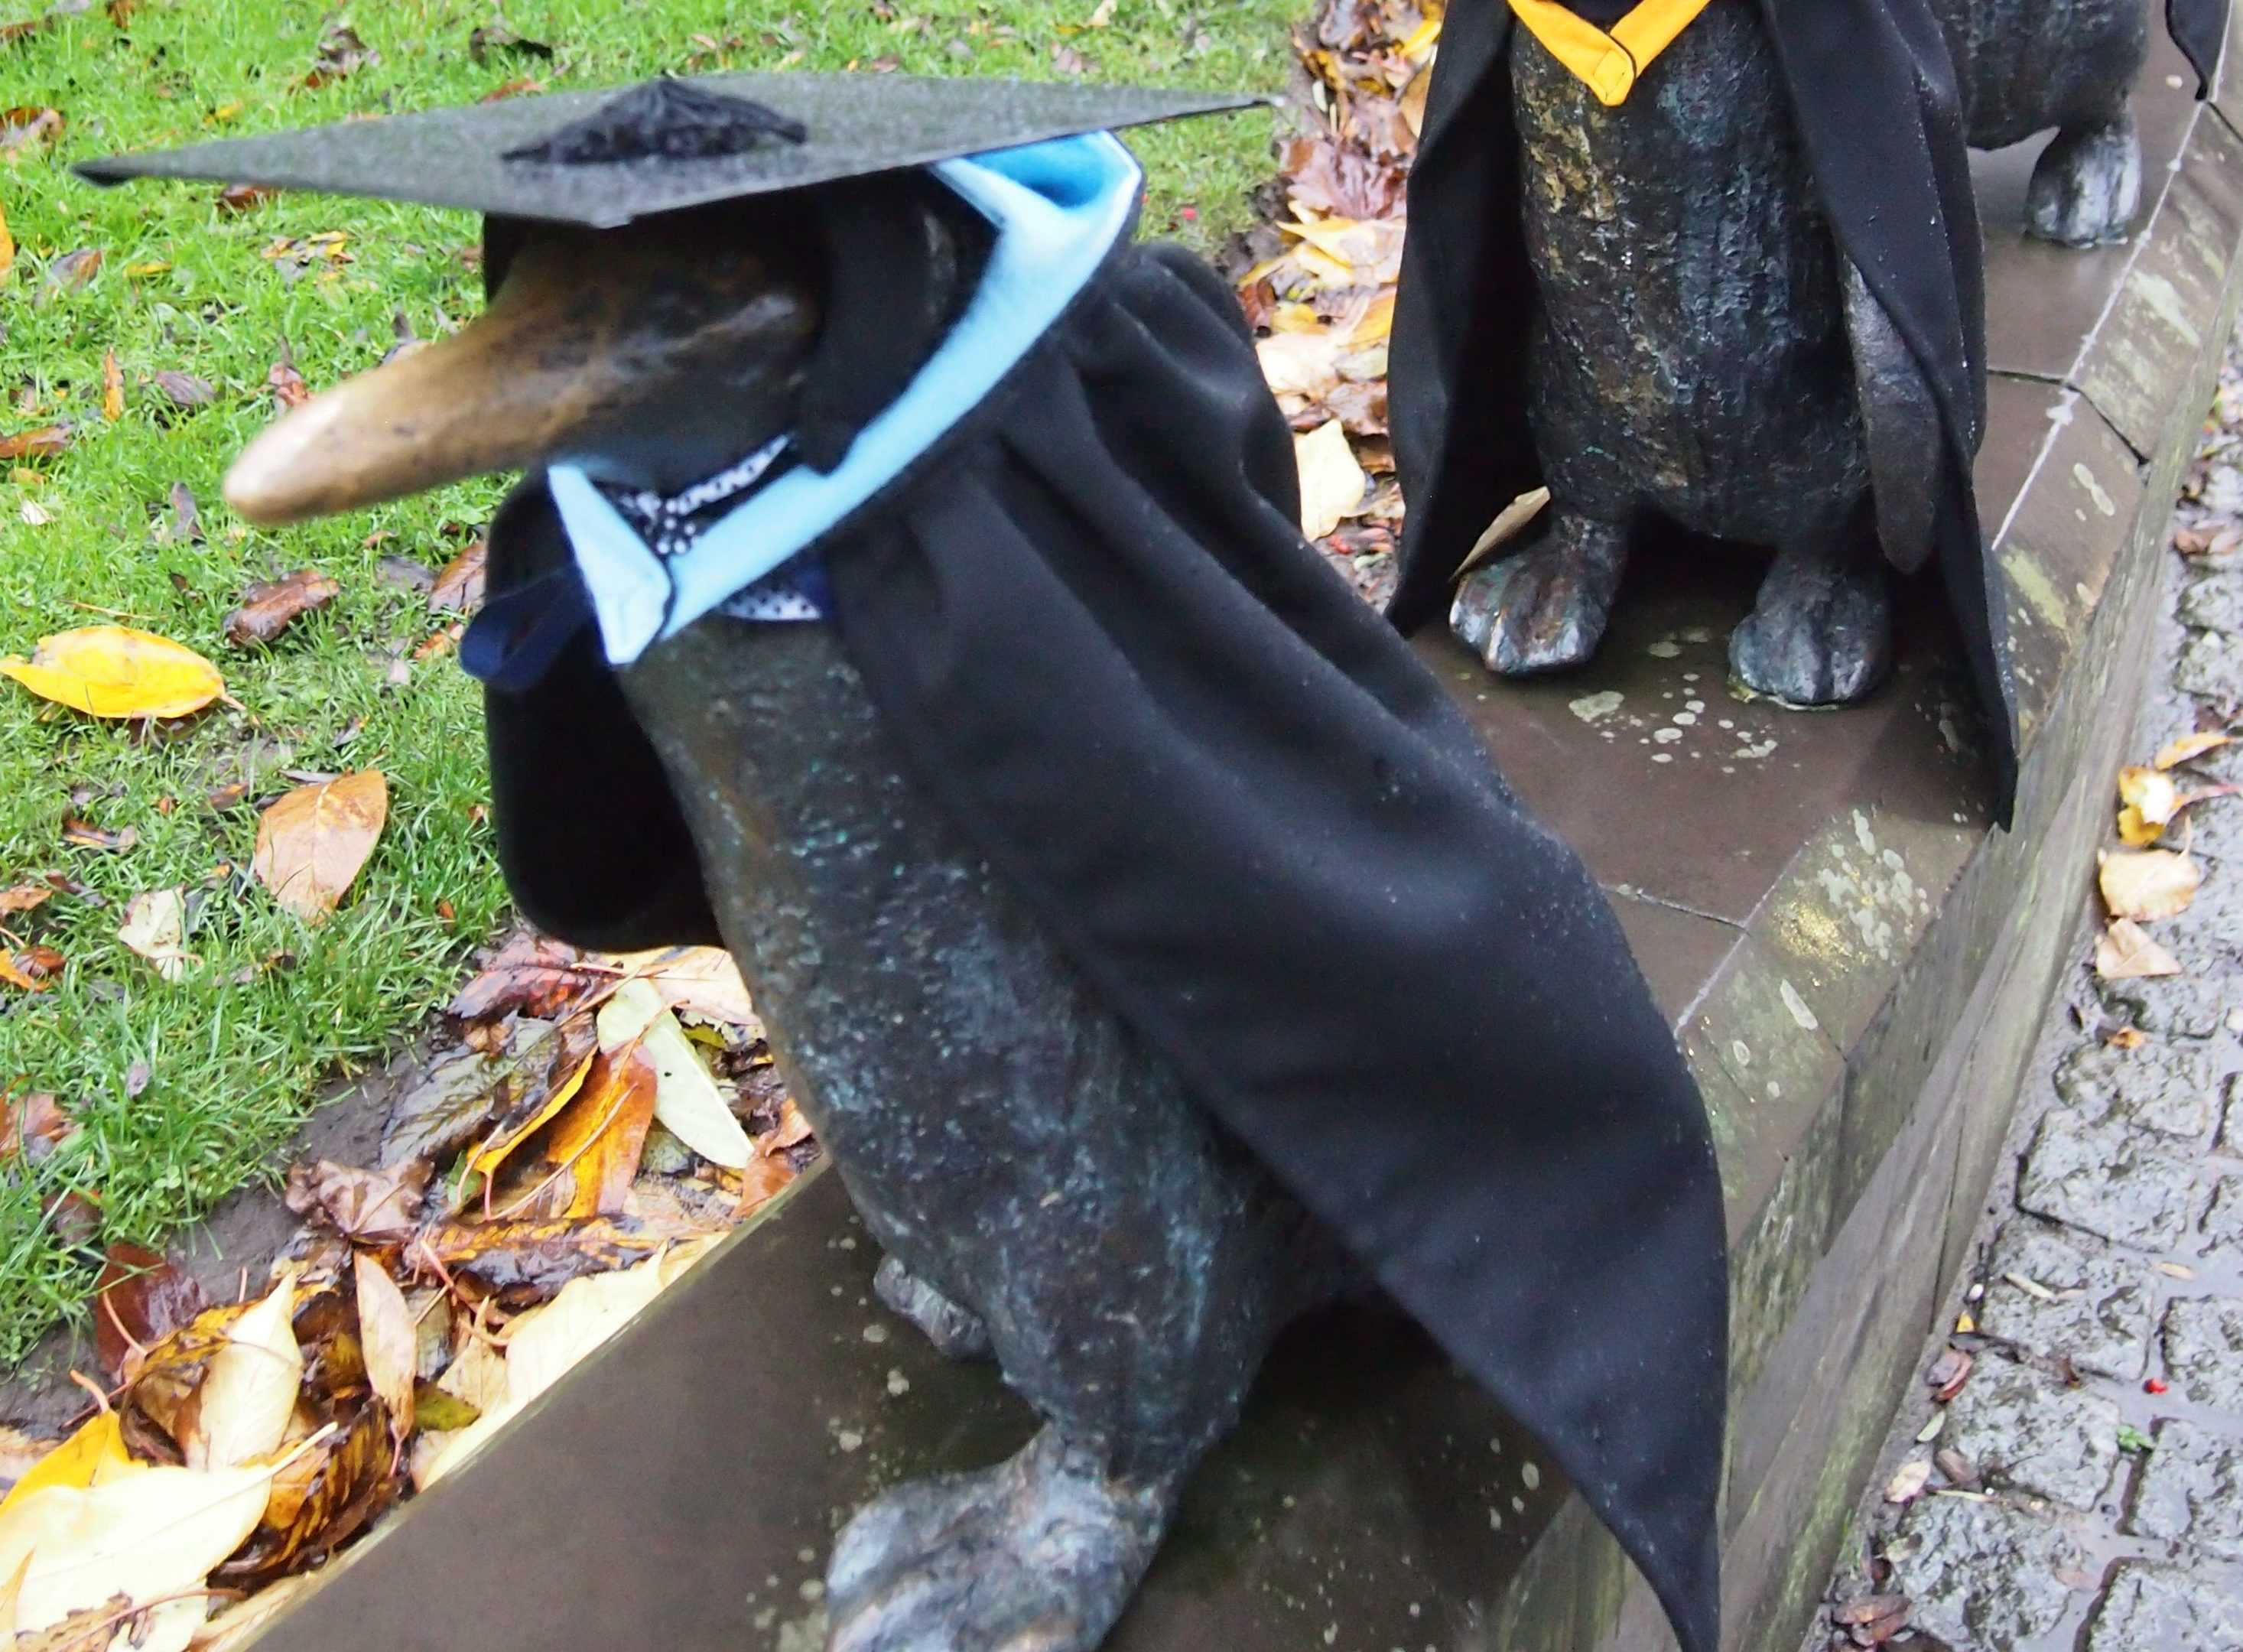 Penguins in university robes.